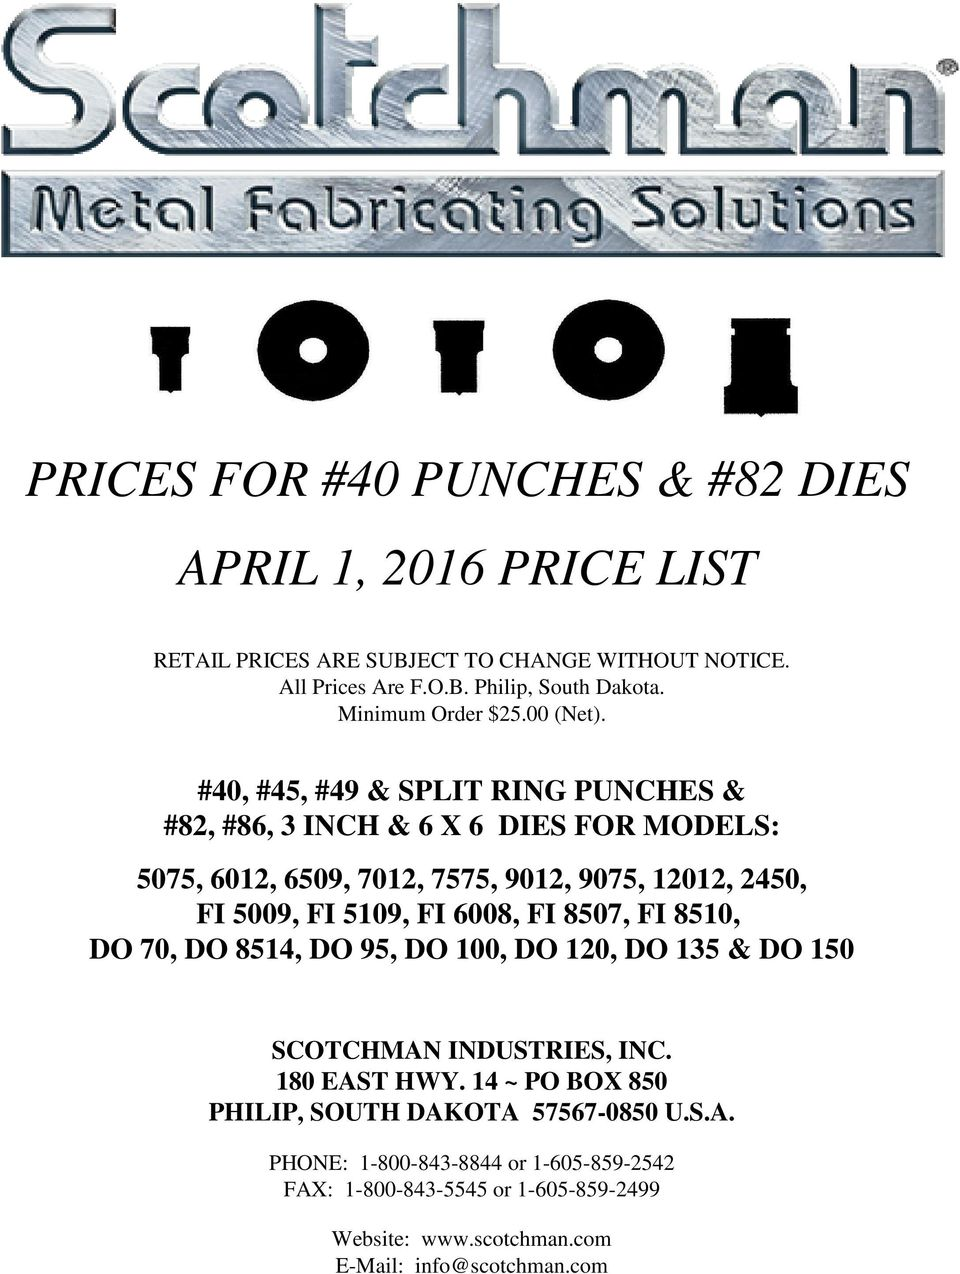 PRICES FOR #40 PUNCHES & #82 DIES APRIL 1, 2016 PRICE LIST - PDF